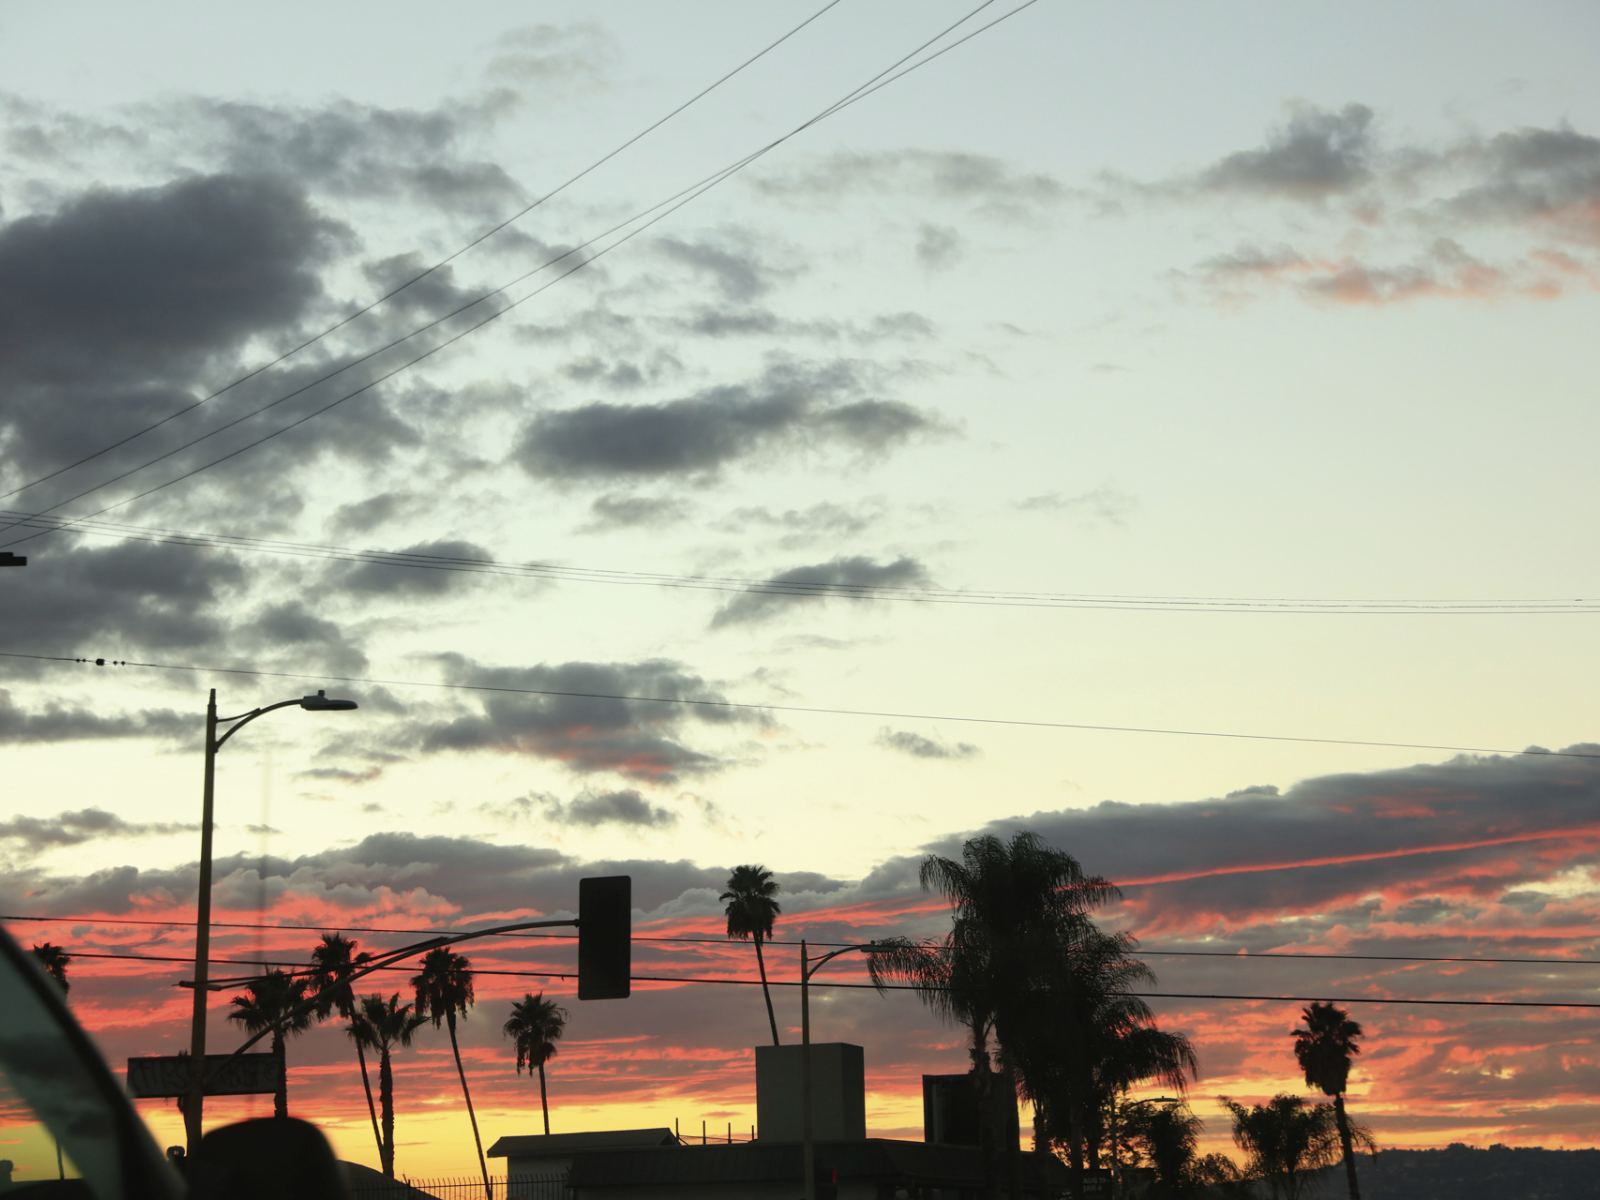 Driving During an L.A. Sunset